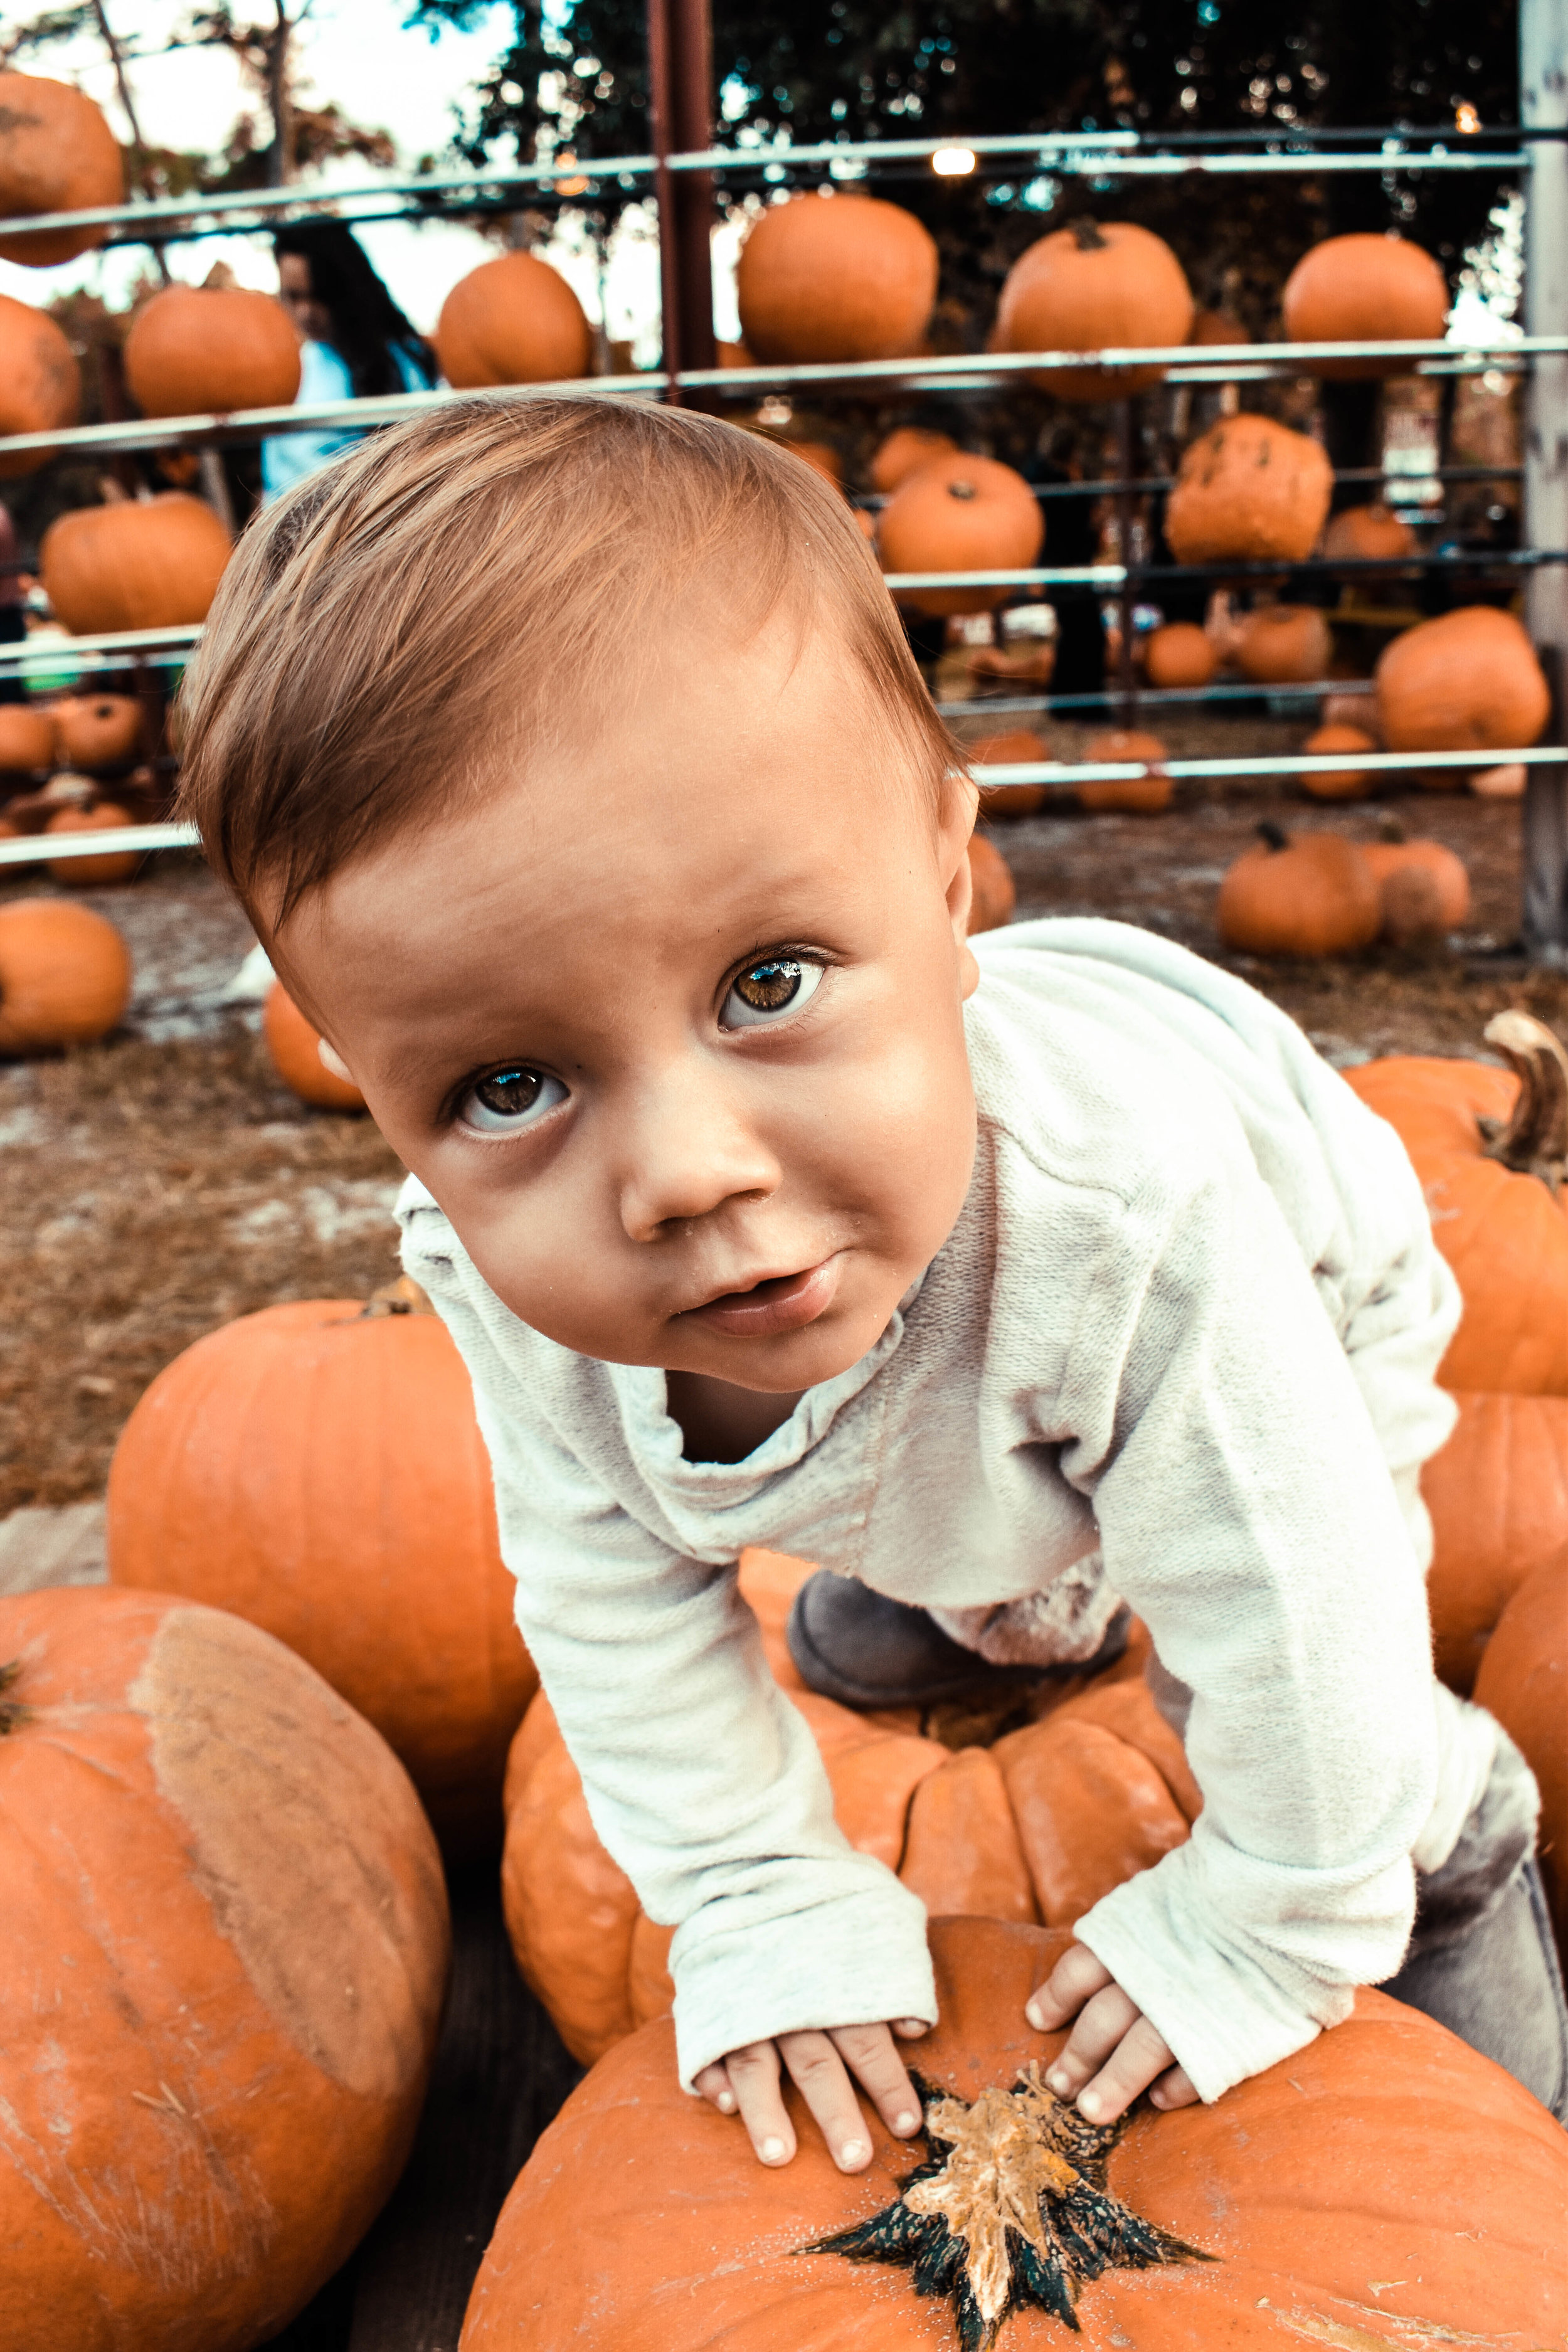 one of my favorites. the tiny fingers on the pumpkin ugh!!